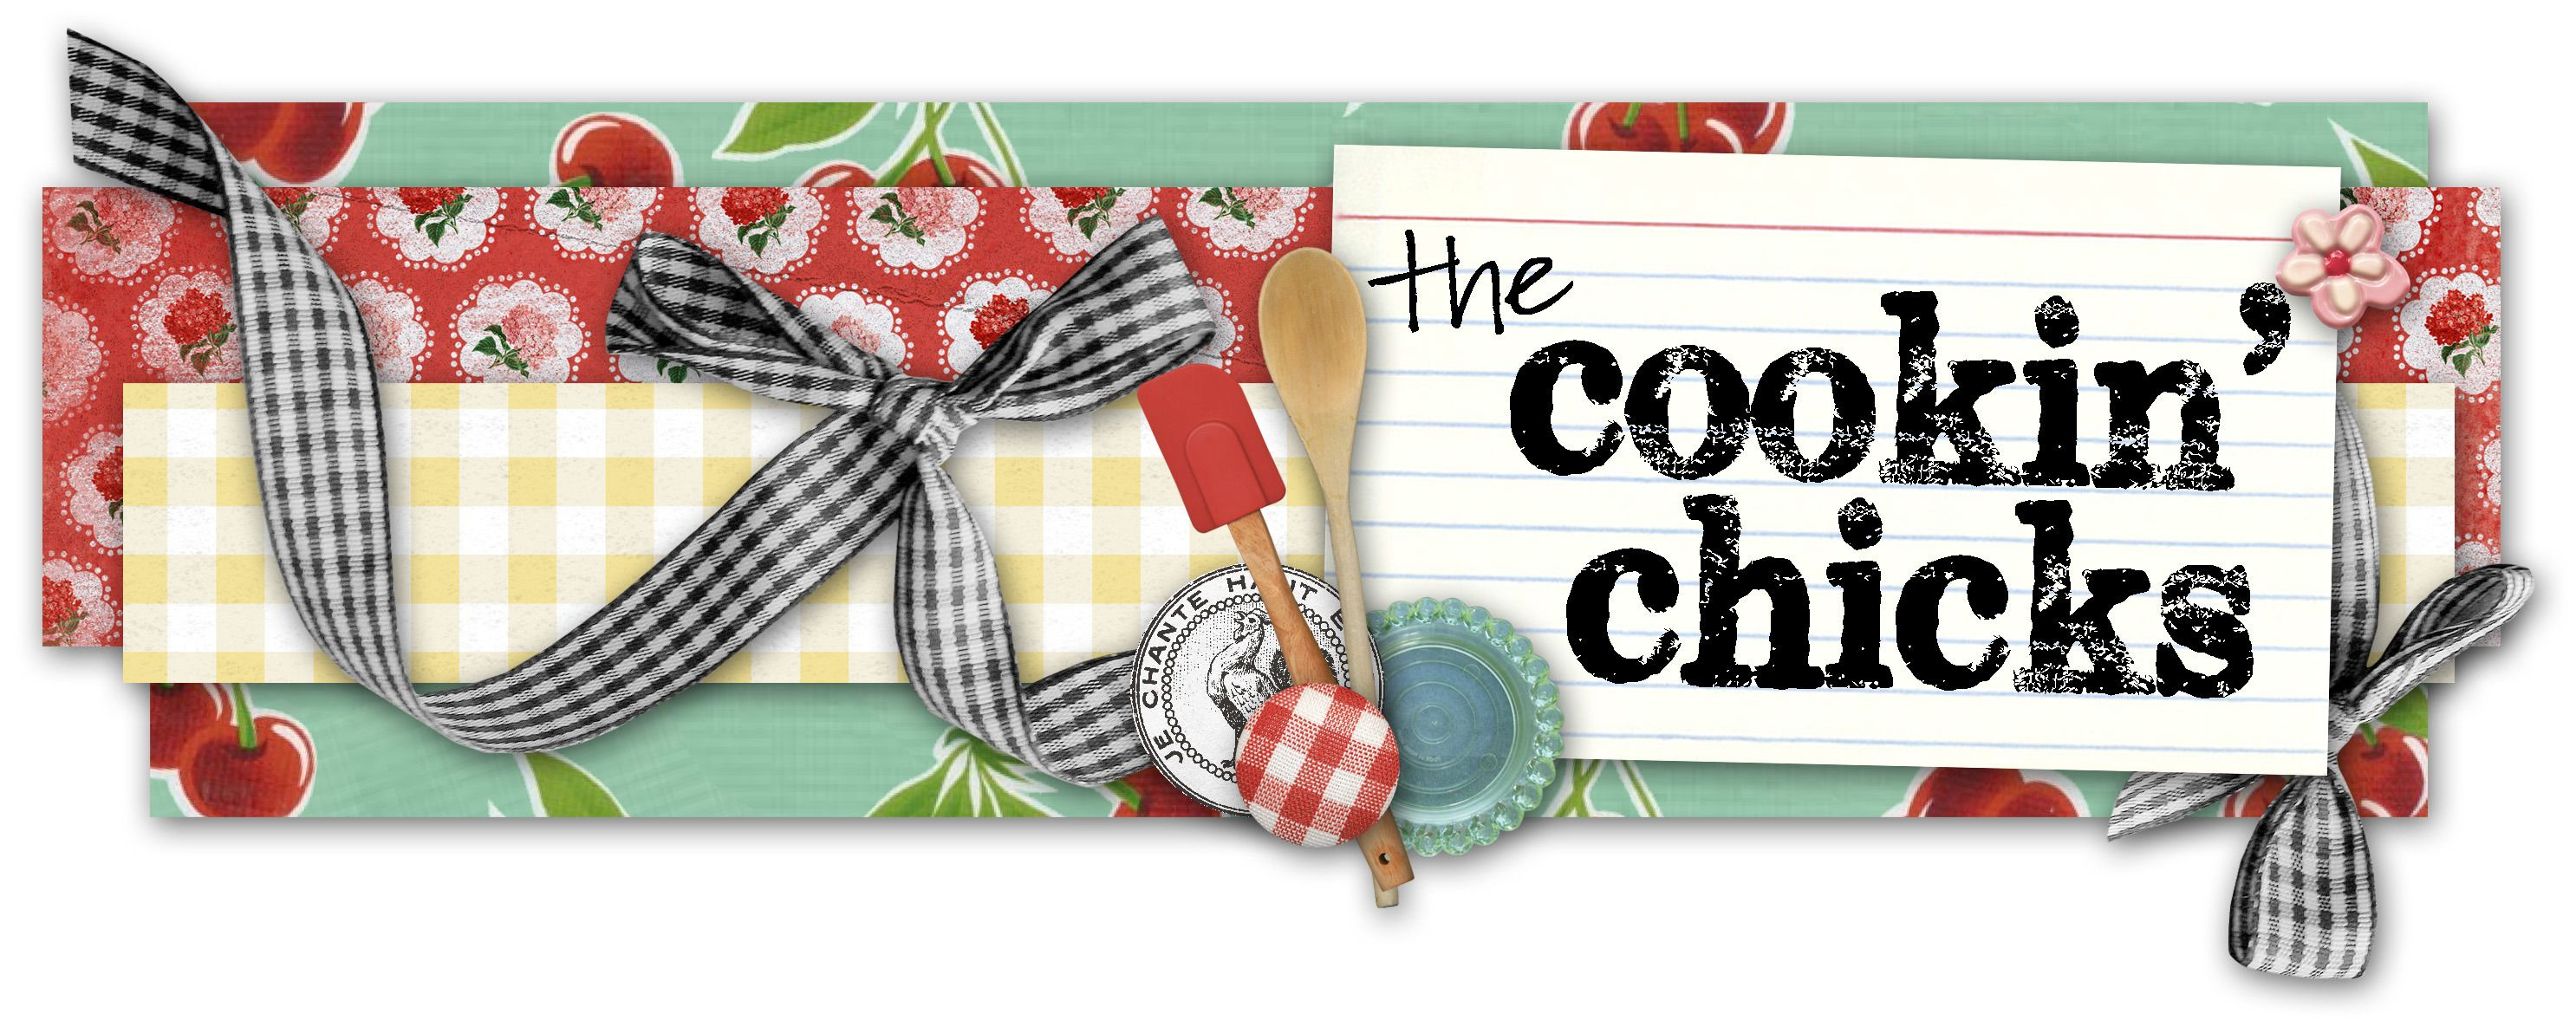 The Cookin Chicks blog for yummy recipes!! : )  Also on FB!!